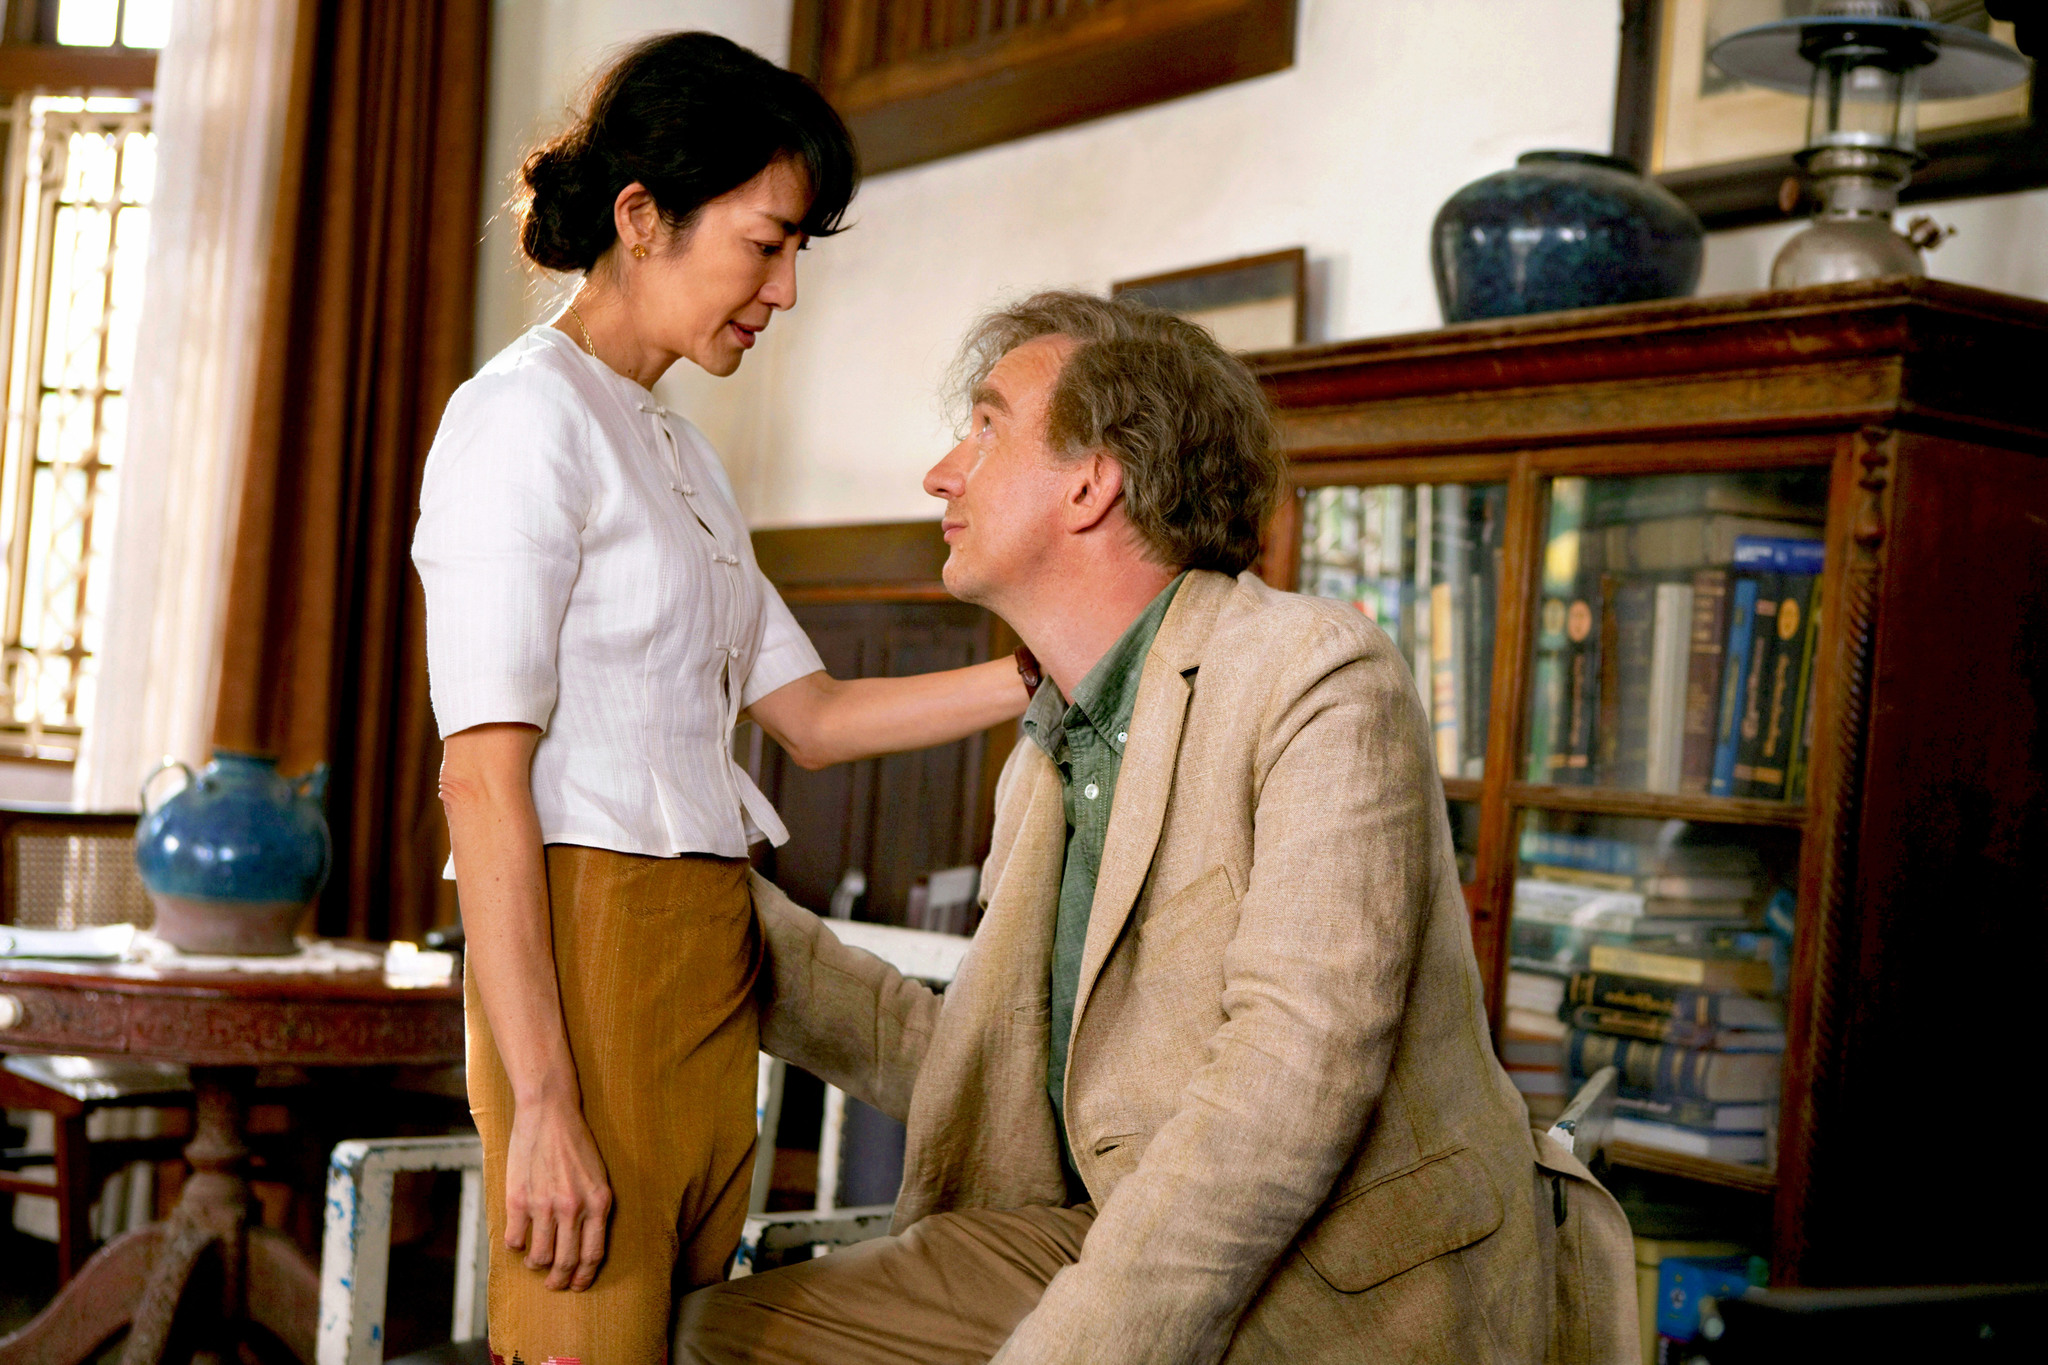 David Thewlis and Michelle Yeoh in The Lady (2011)